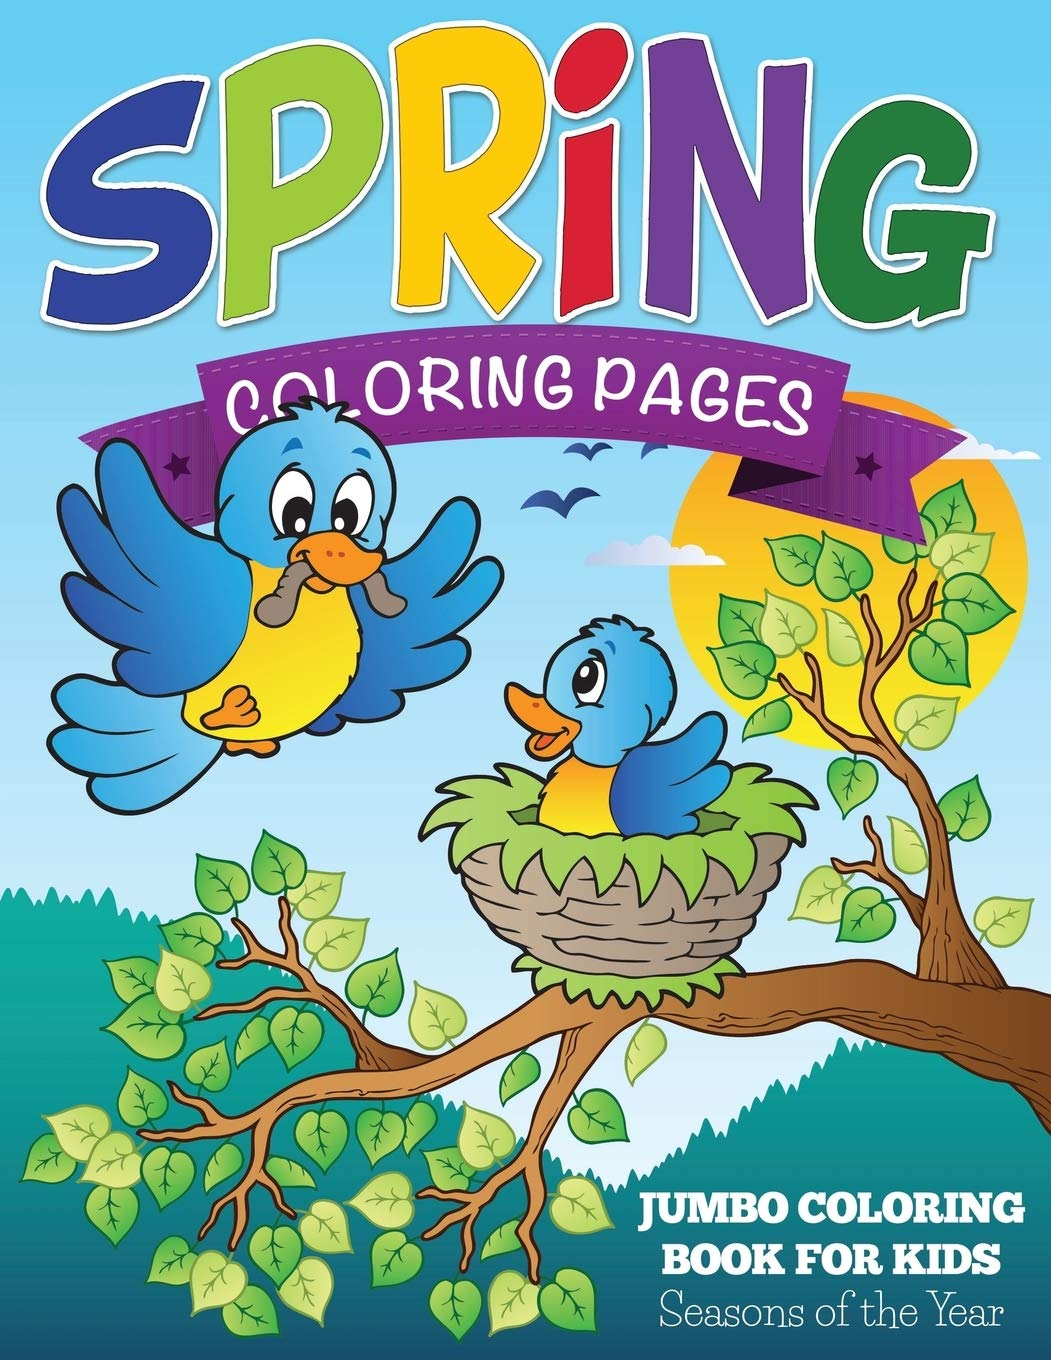 Spring Coloring Pages: Jumbo Coloring Book For Kids - Seasons Of